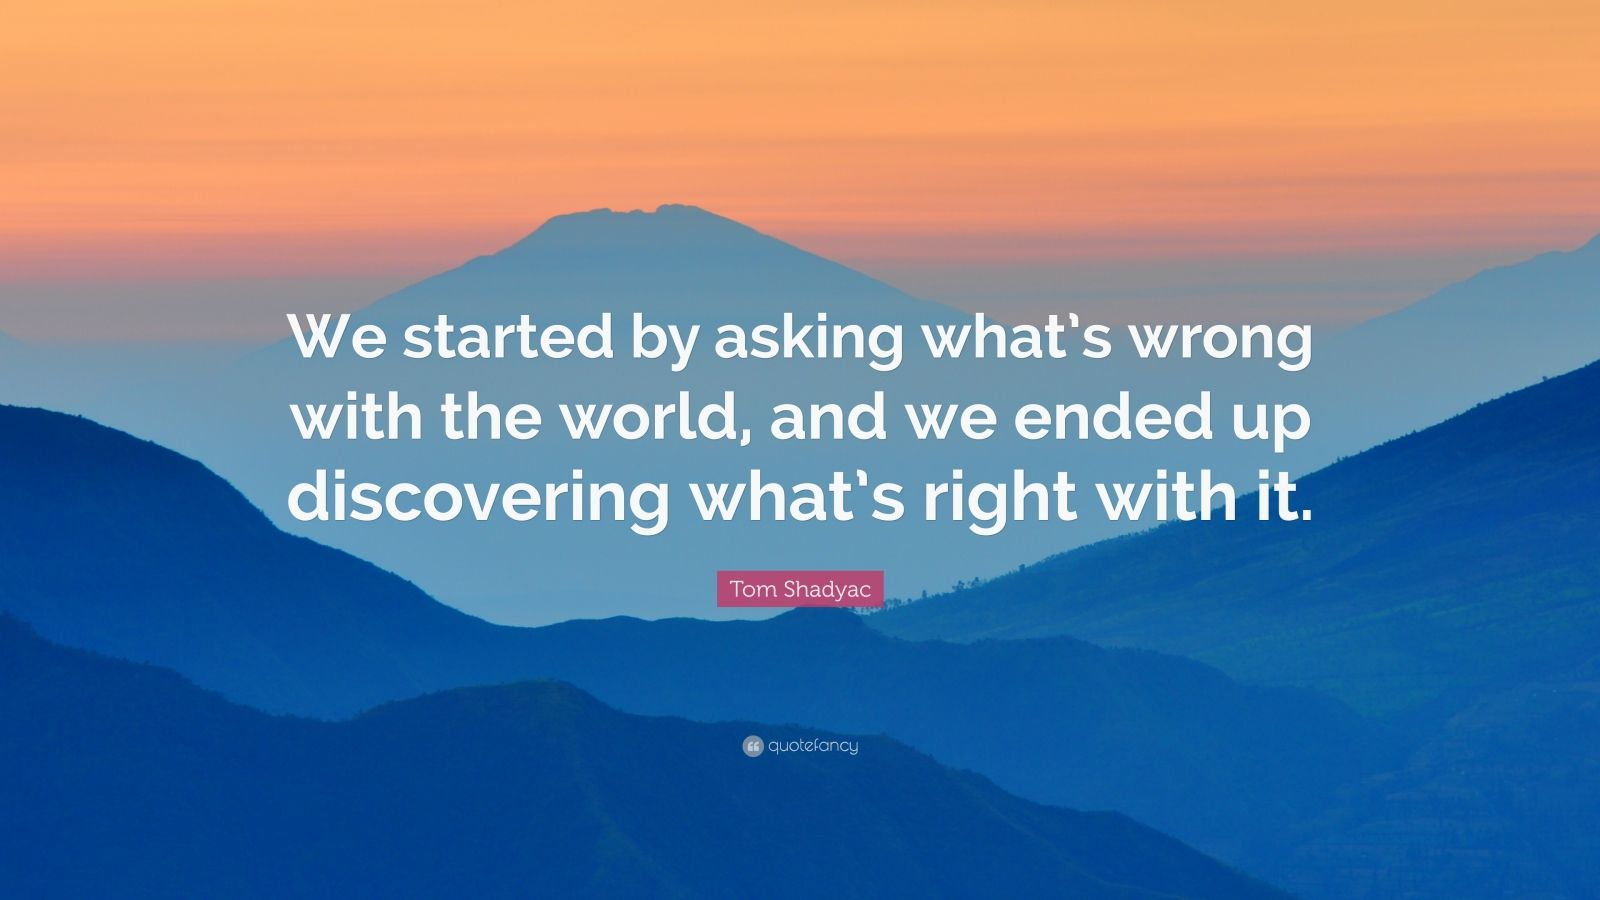 """Tom Shadyac Quote: """"We started by asking what's wrong with the world, and we ended up discovering what's right with it."""""""